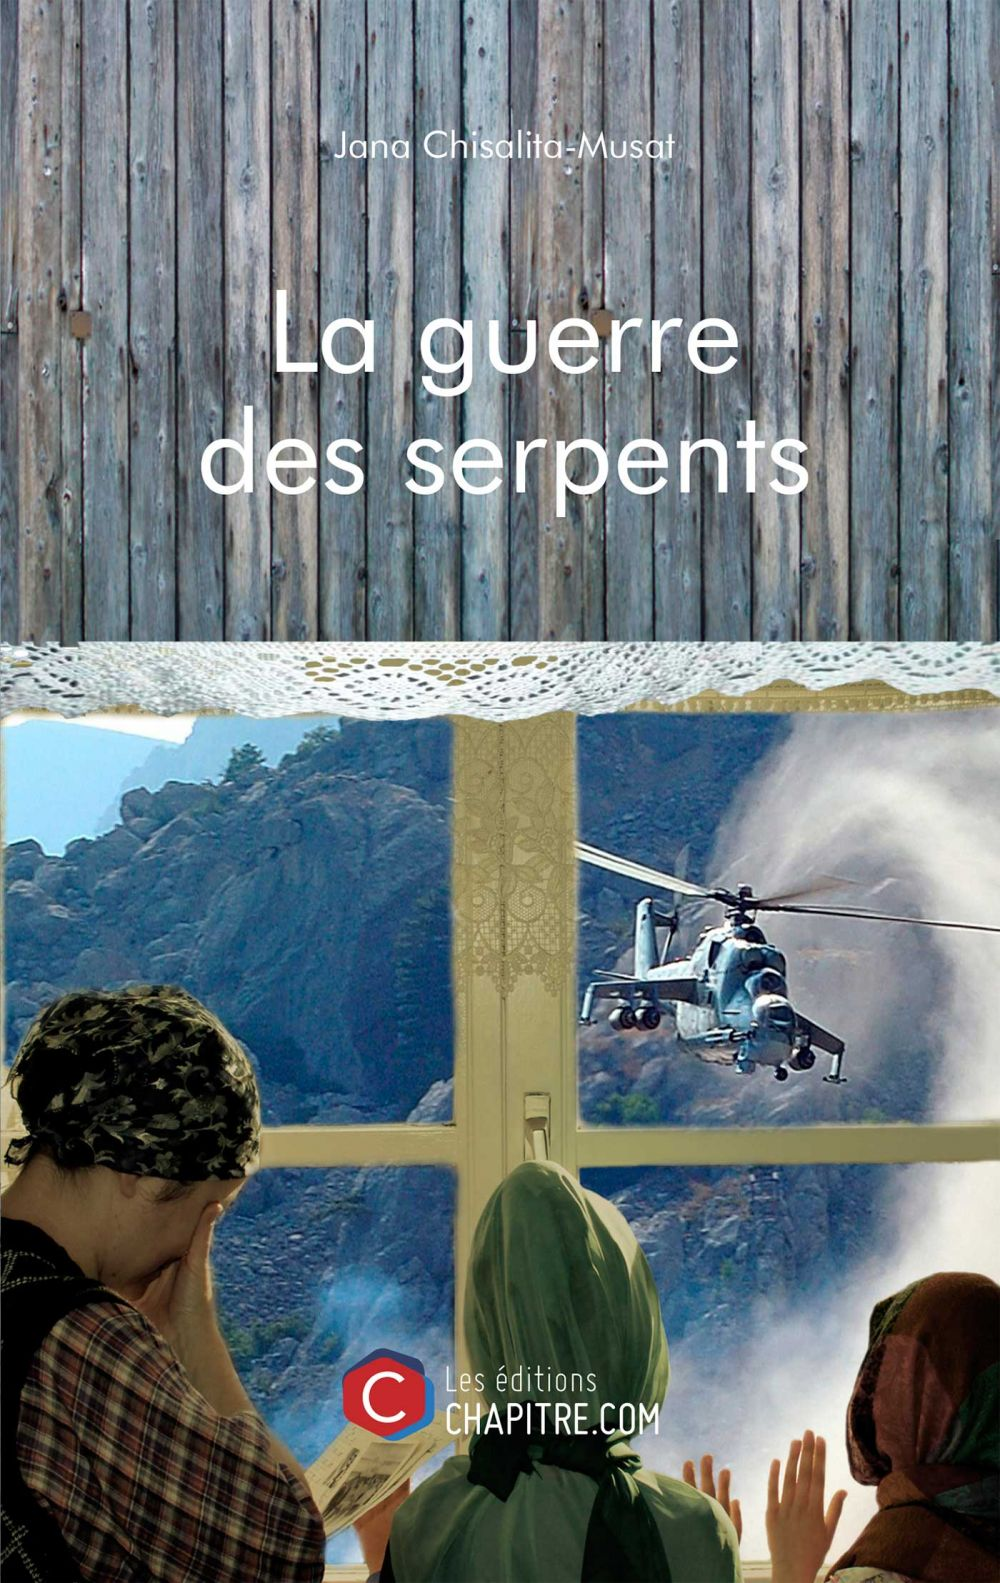 La guerre des serpents